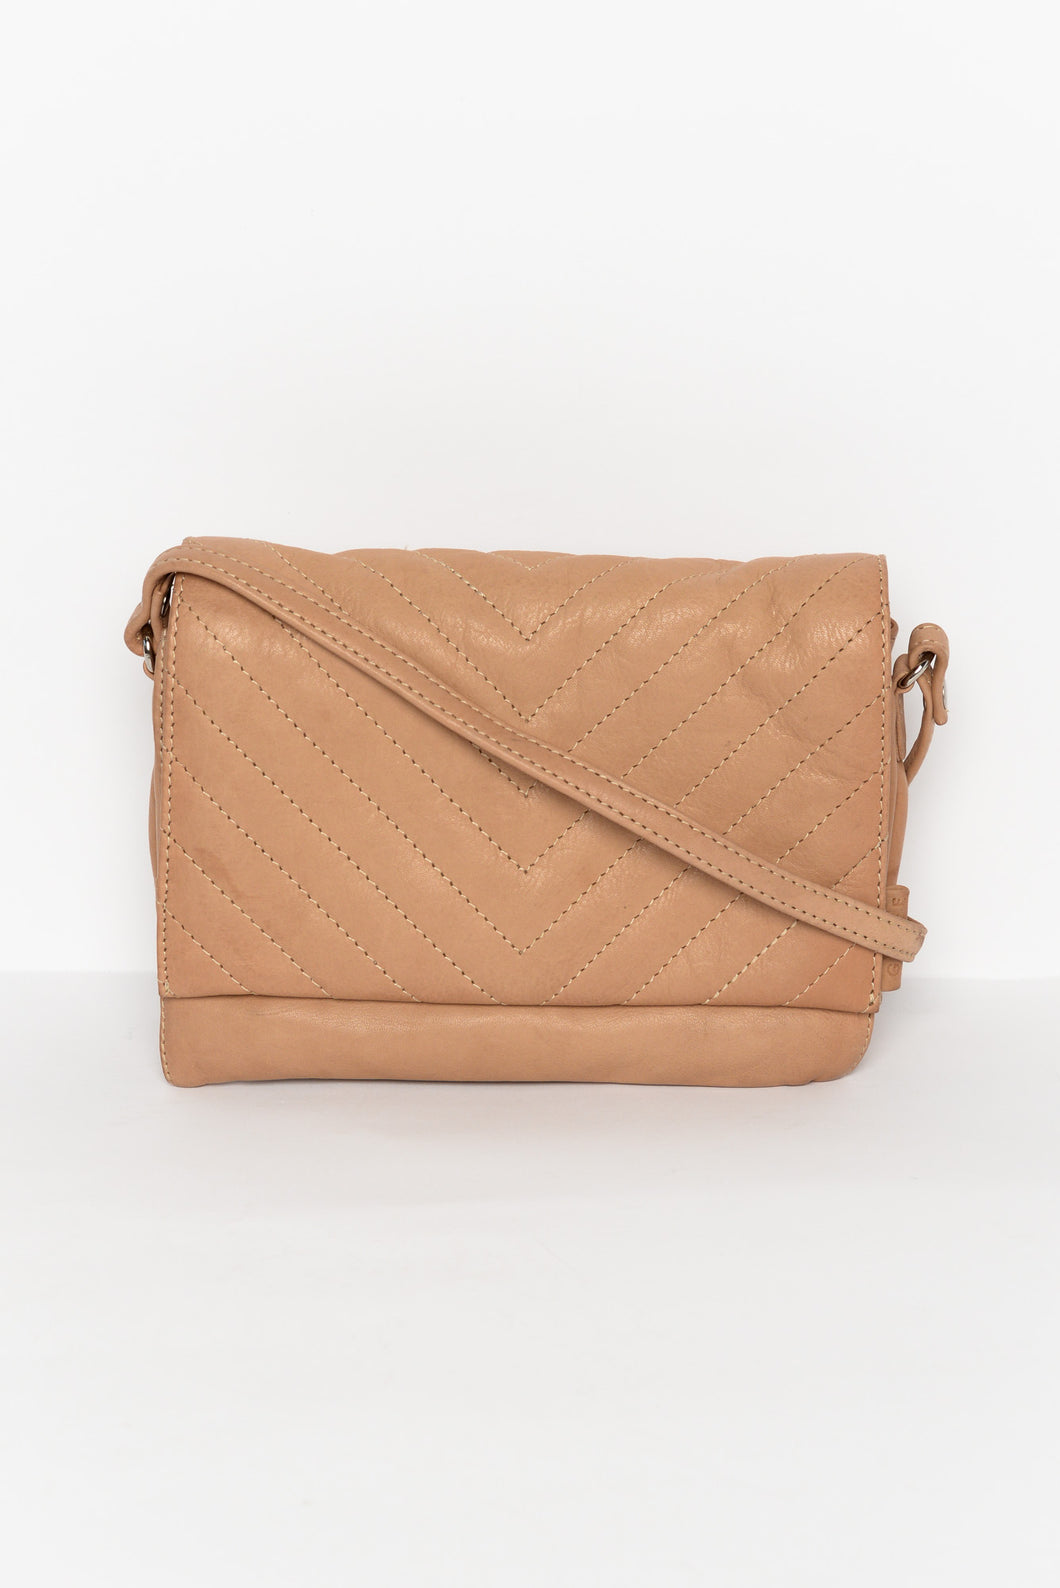 Dallas Beige Quilted Leather Bag